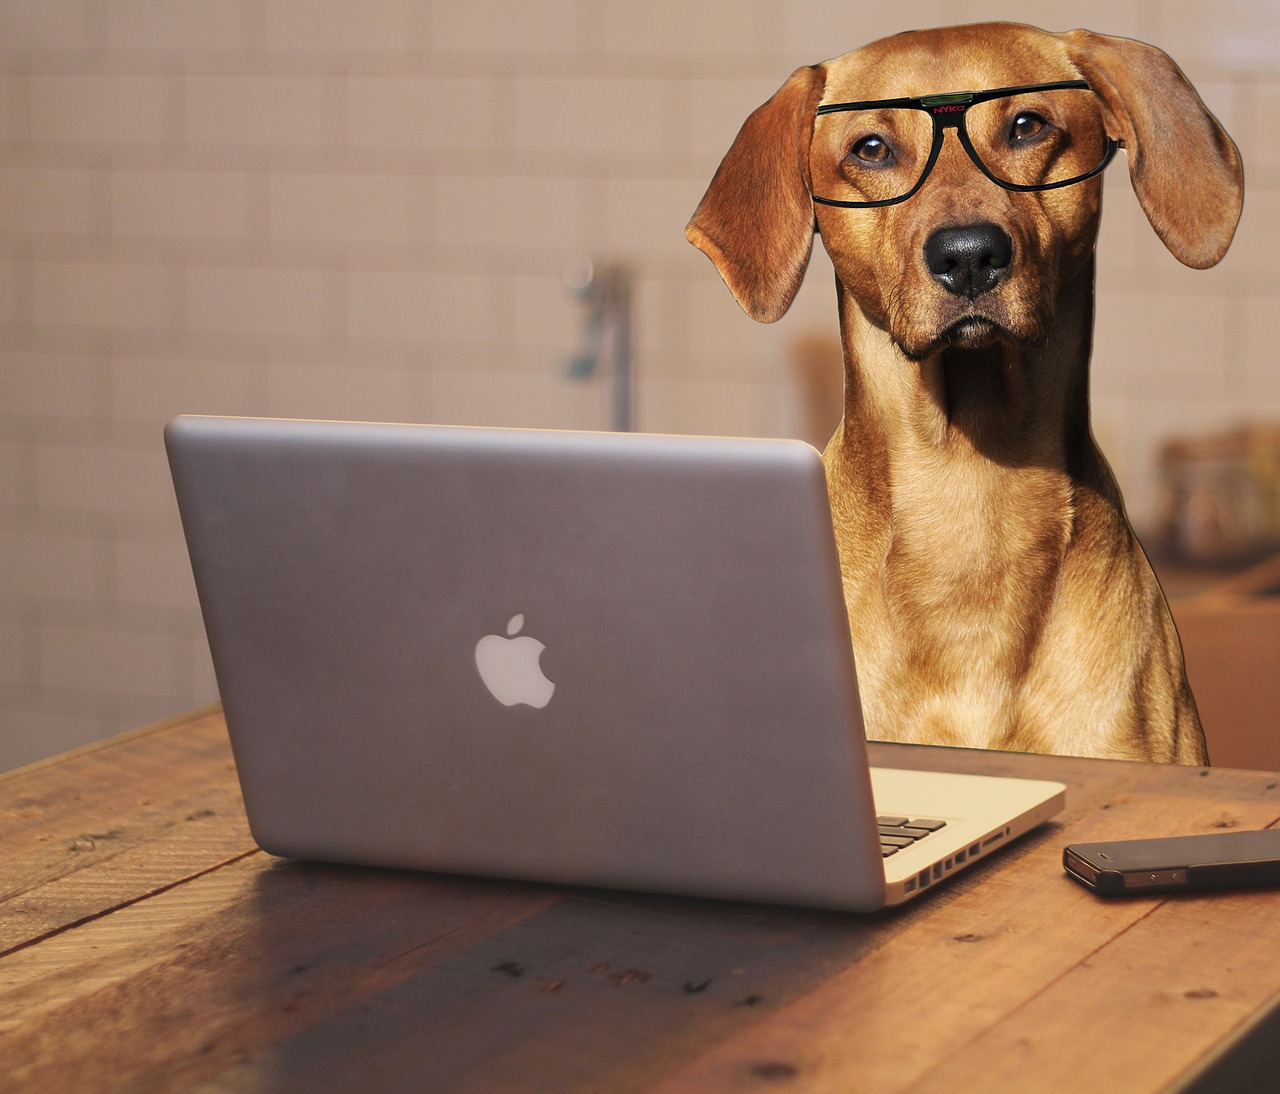 dog-laptop.jpg